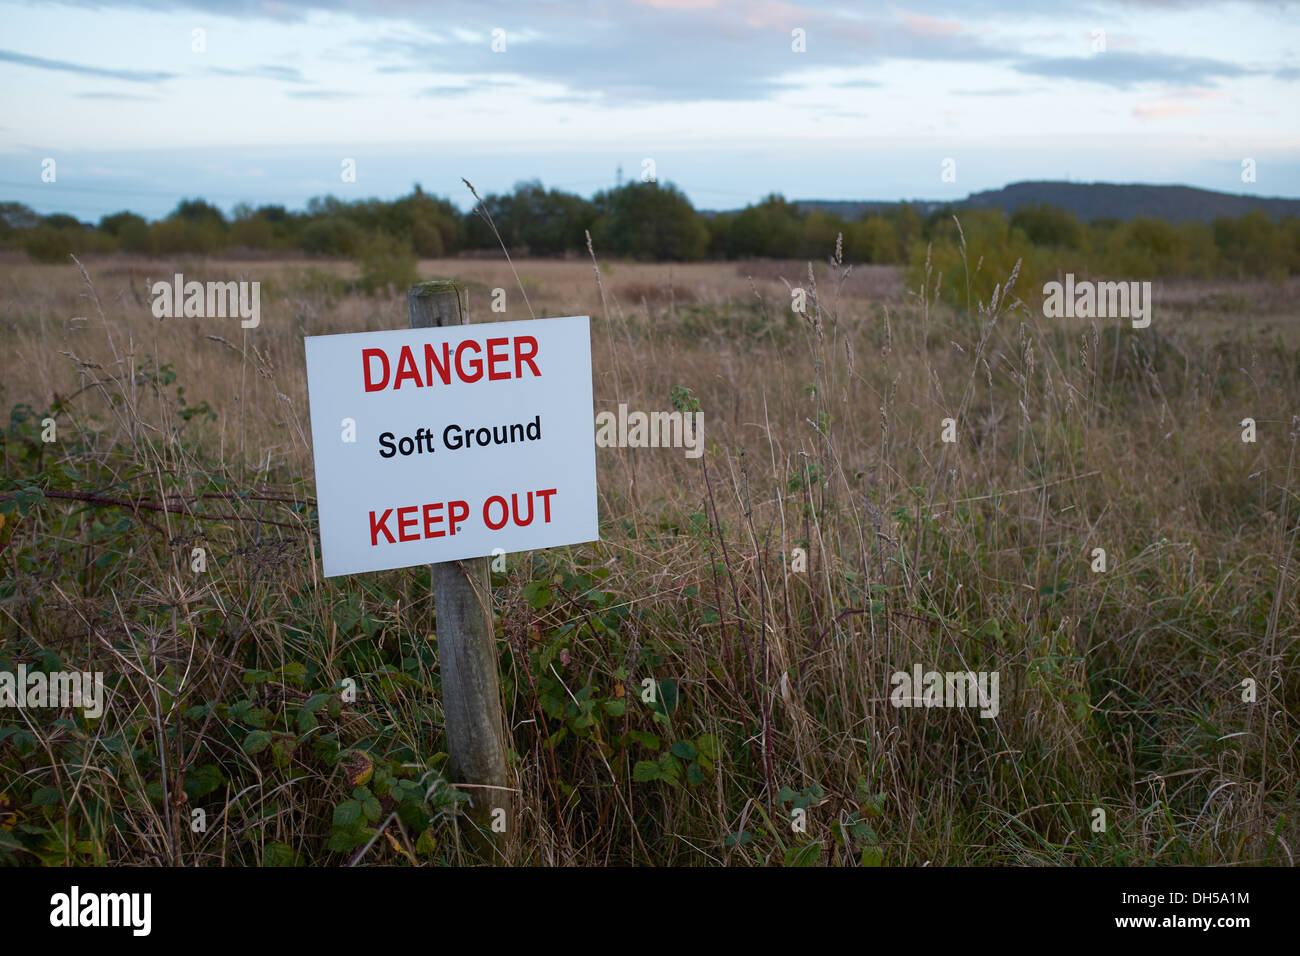 Danger Soft Ground Keep Out sign alongside an area of overgrown land - Stock Image